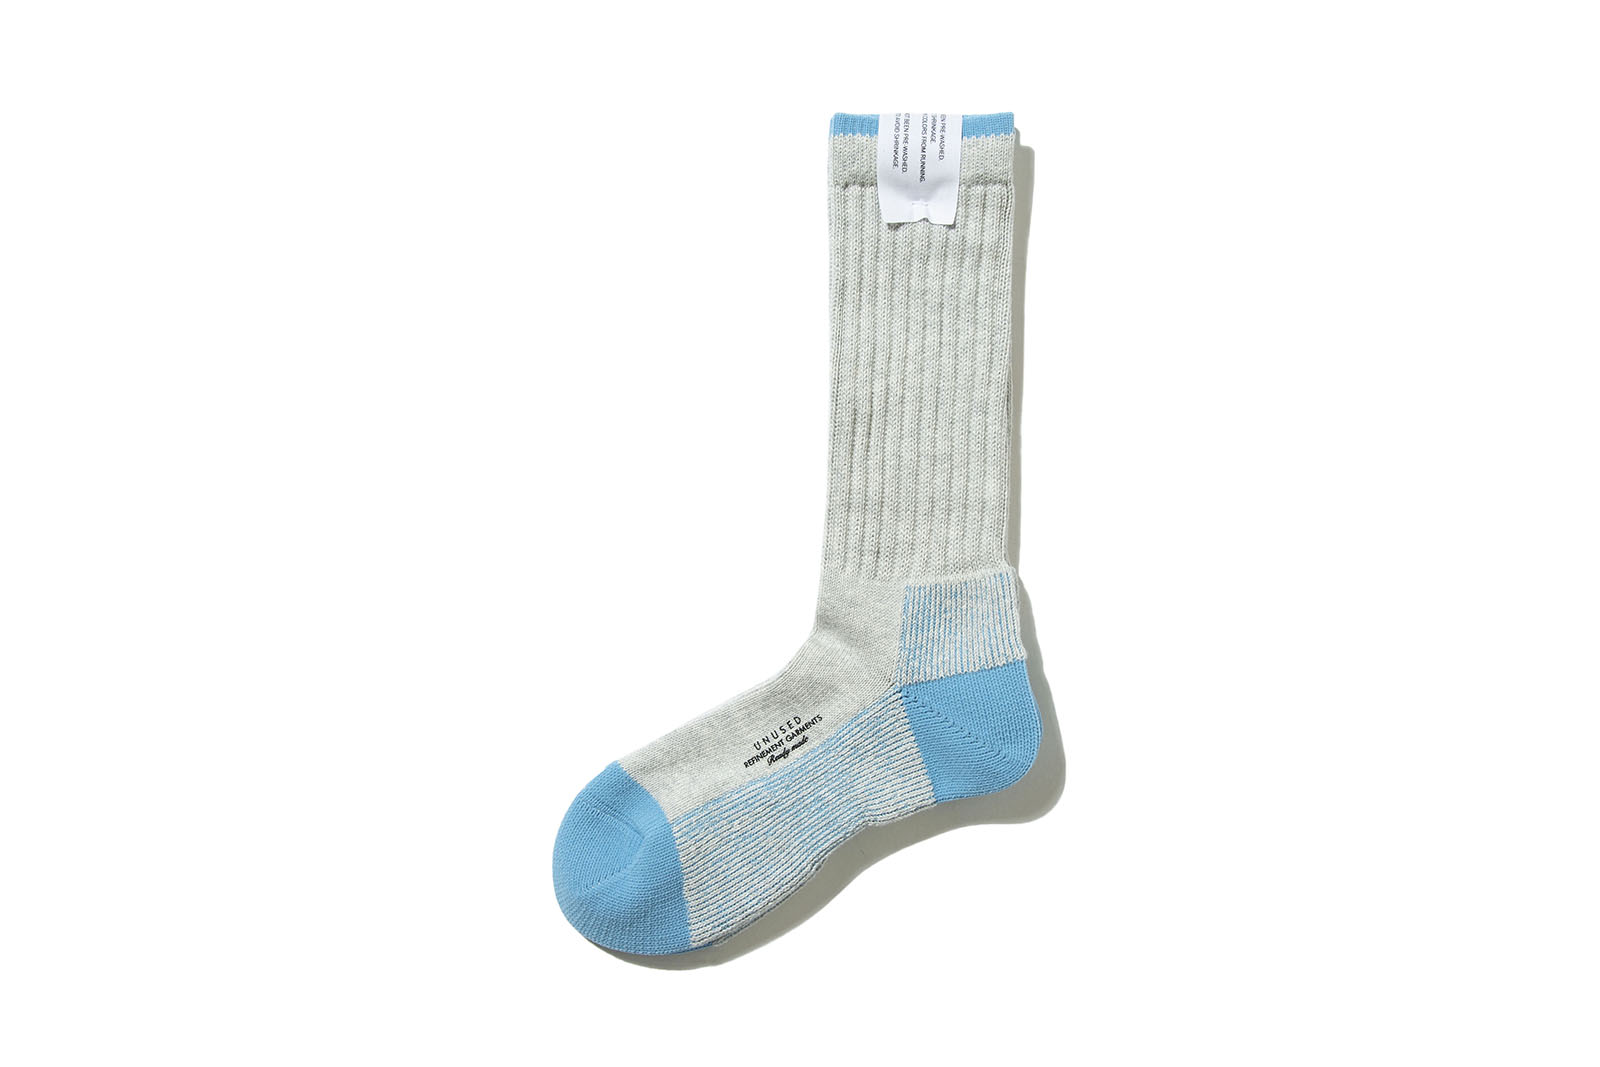 uh0533-cotton-nylon-socks-grey_p2